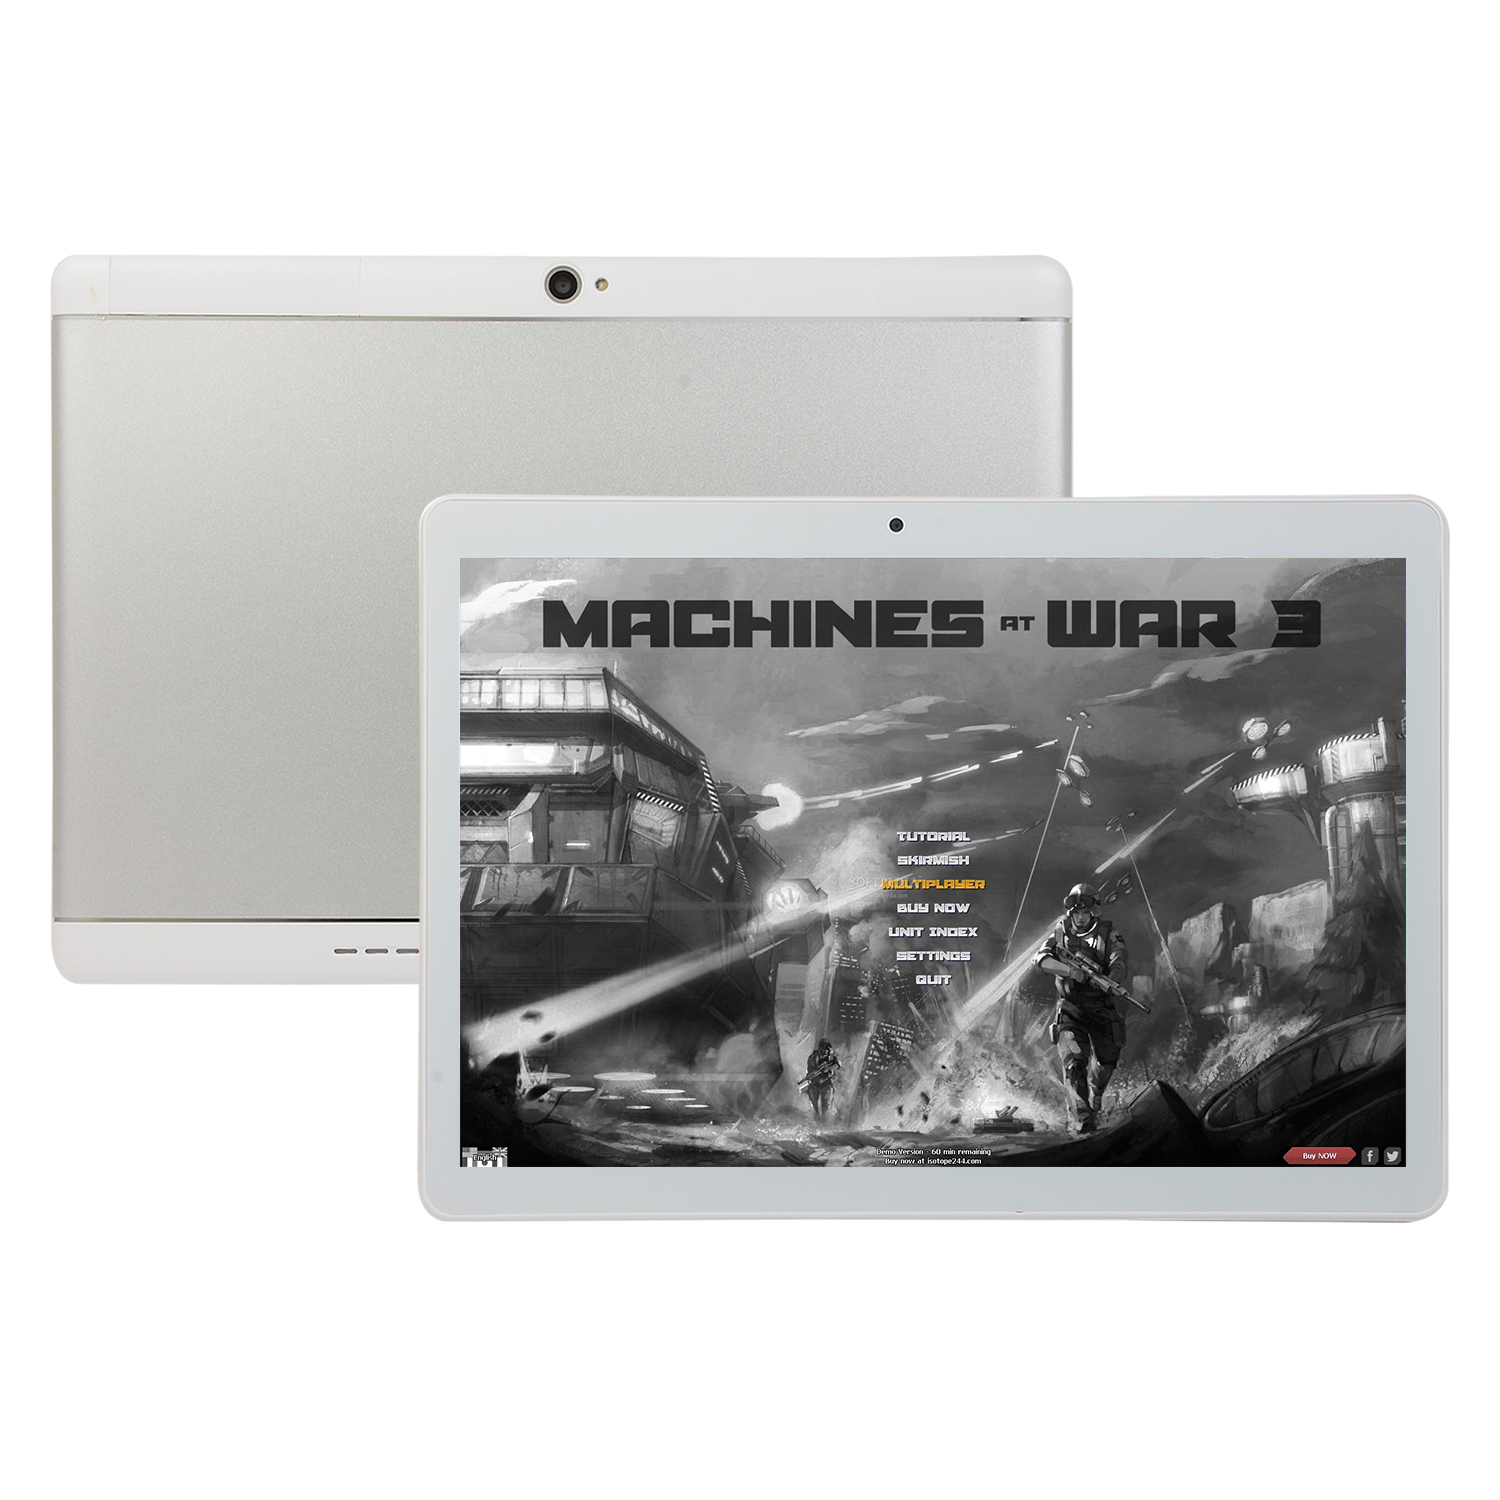 10-Inch-Tablet-Android-8-0-6-64GB-Tablet-PC-with-TF-Card-Slot-and-Dual-Camera miniature 14